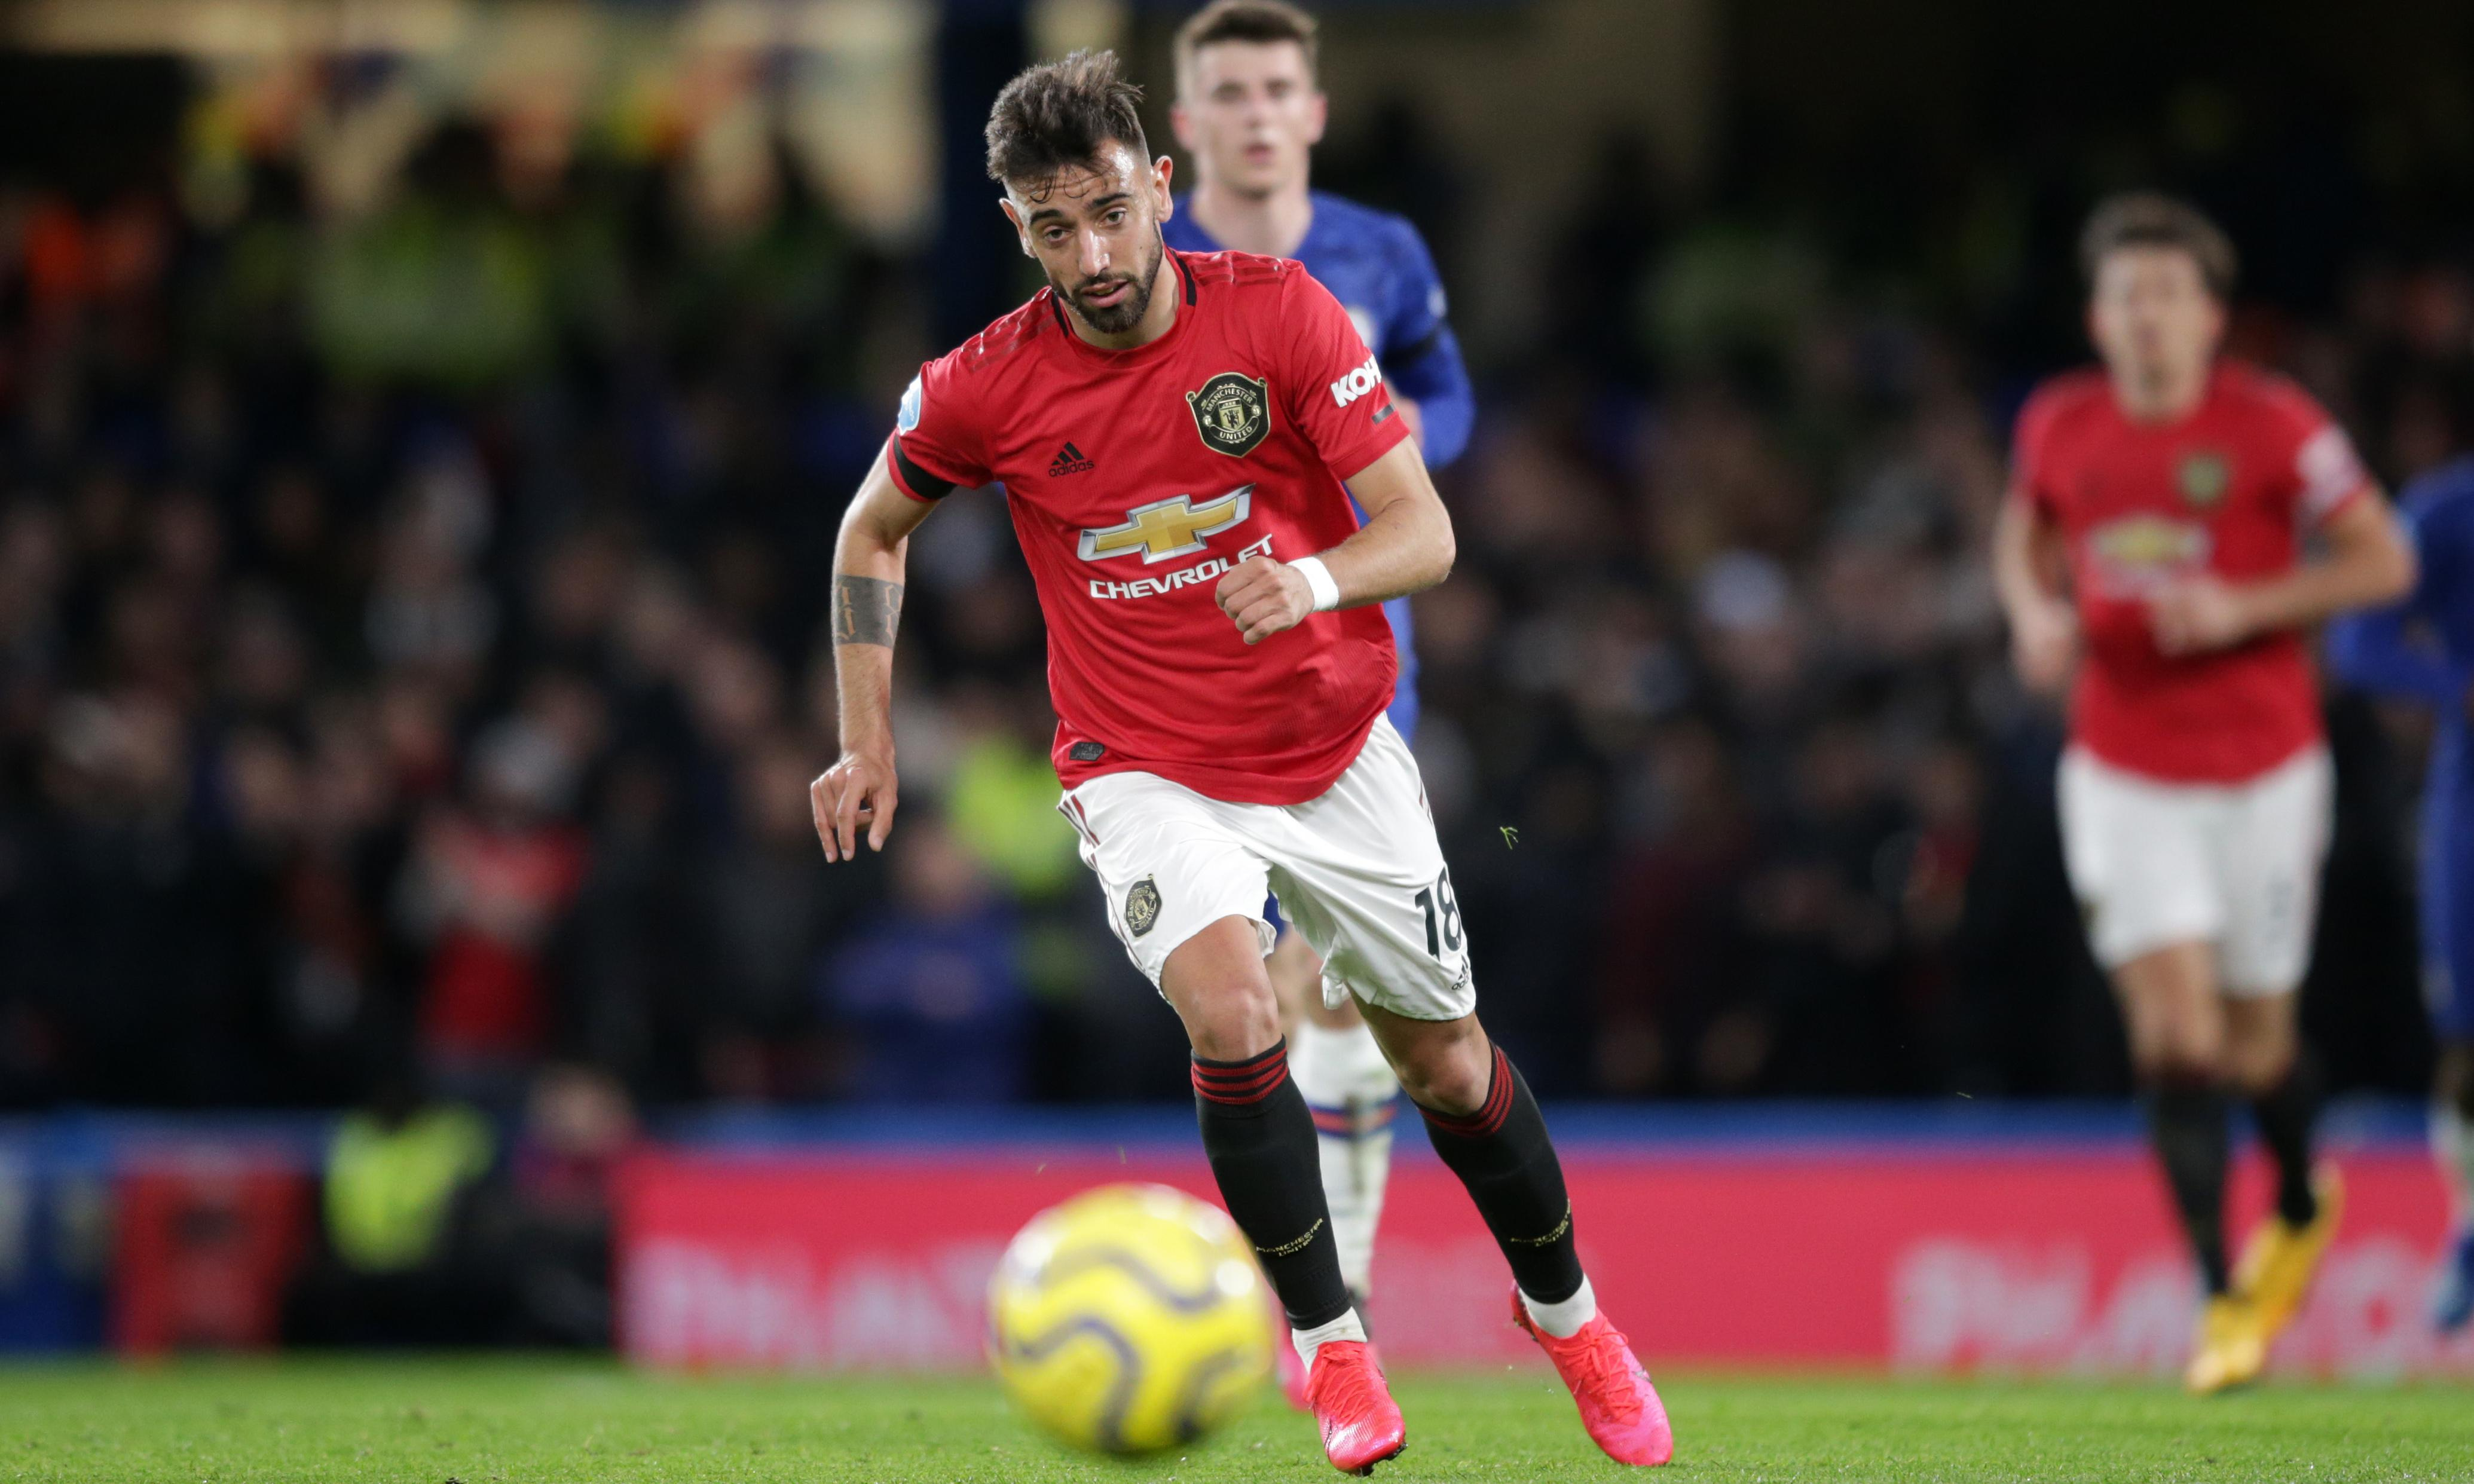 Bruno Fernandes offers vision of a thrusting United midfield after so long